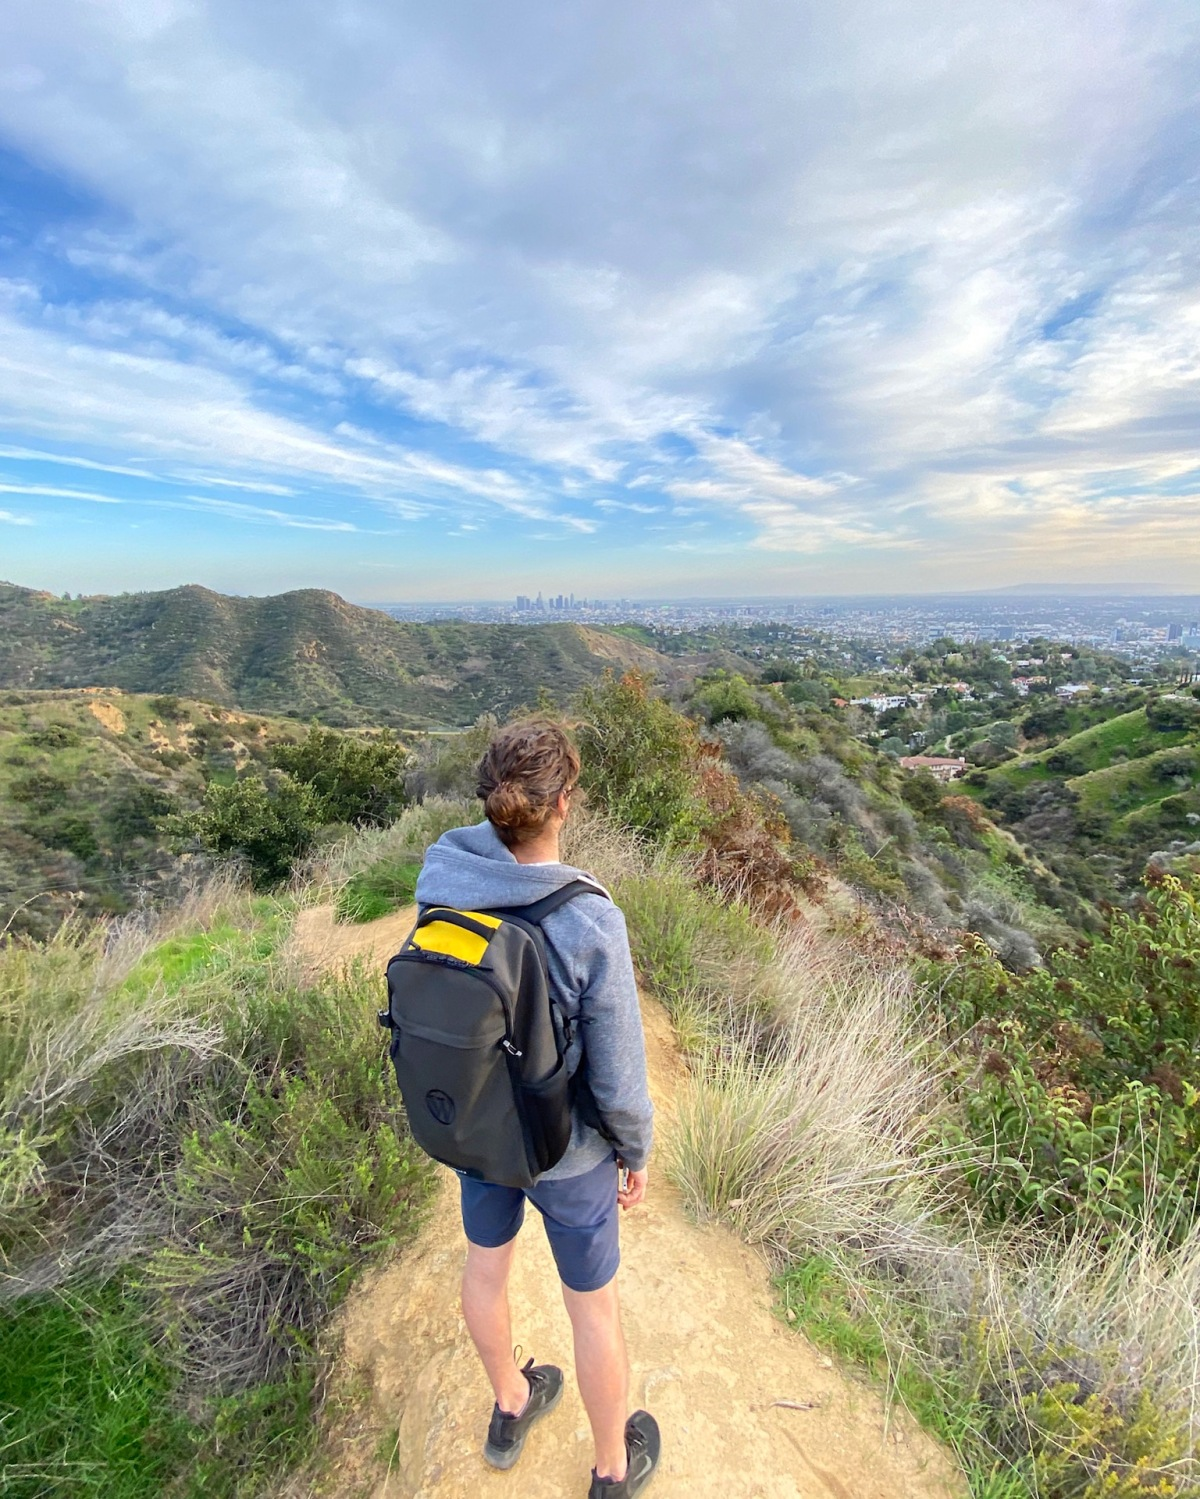 Man in shorts and hoodie wearing a backpack overlooking the Hollywood Hills in Los Angeles, California.